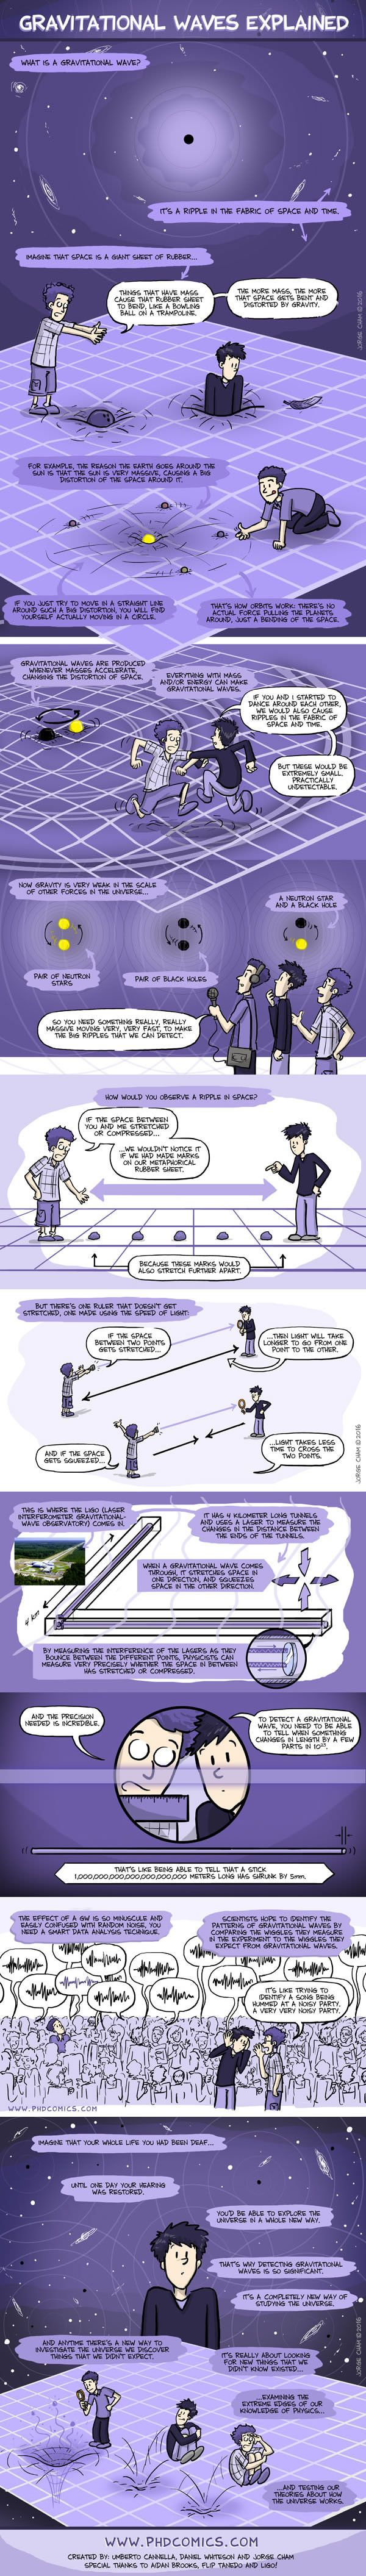 This Funny Comic Gives You A Full Explanation Of Gravitational Waves (By Jorge Cham / PHDcomics) - 9GAG